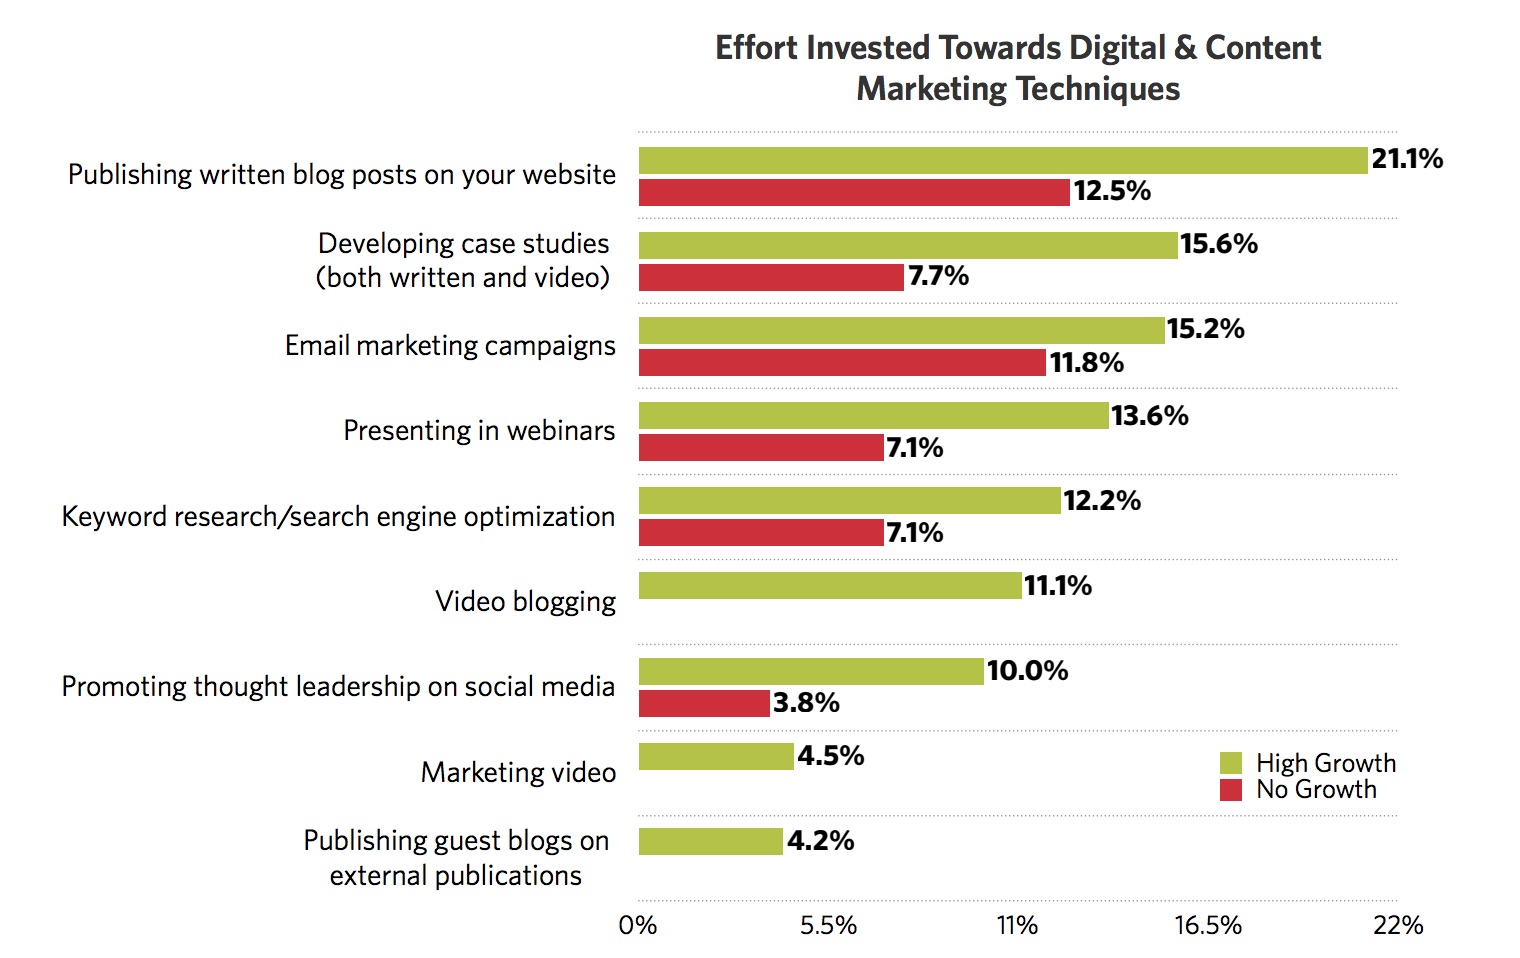 High Growth Survey investment in digital and content marketing